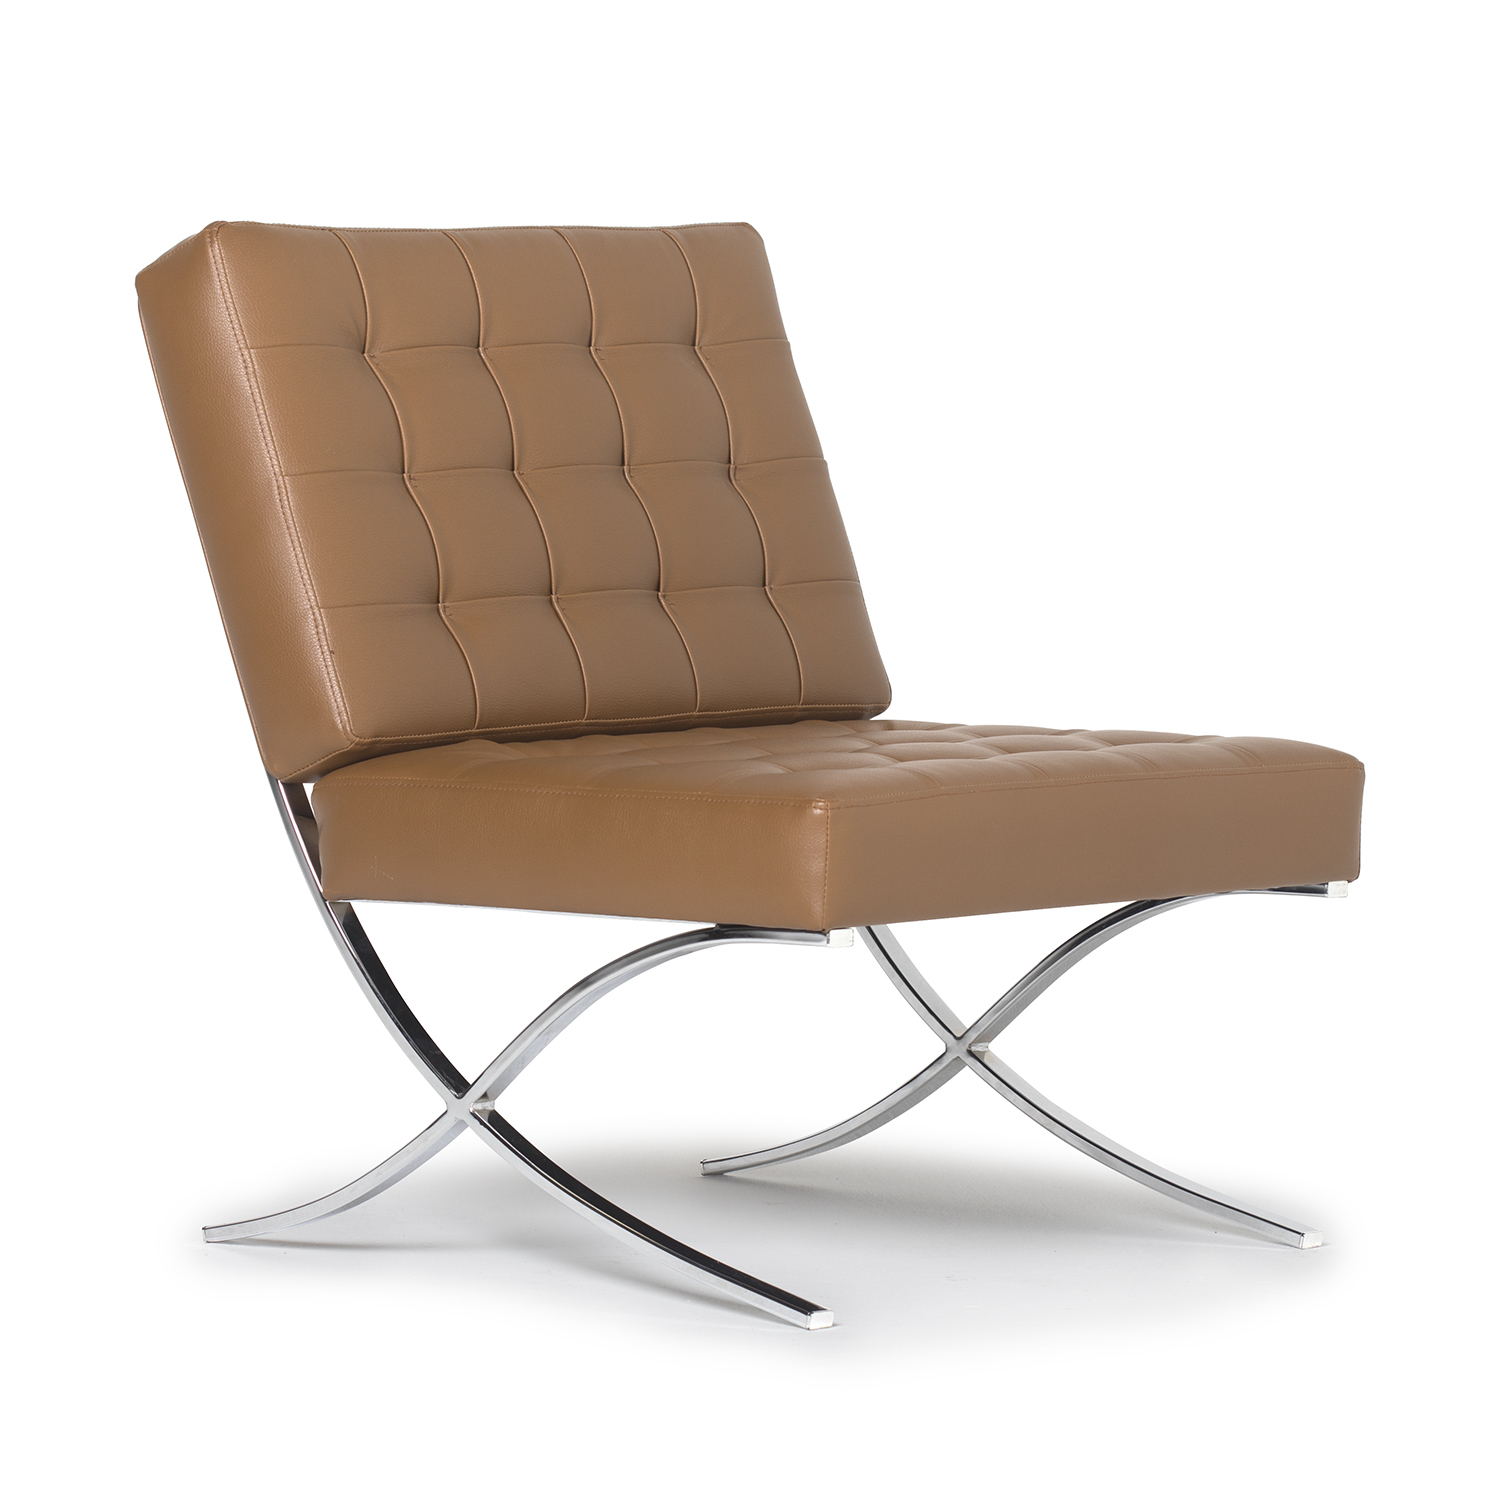 Tan Leather Accent Chair: Atrium Modern Bonded Leather Accent Chair In Caramel Brown